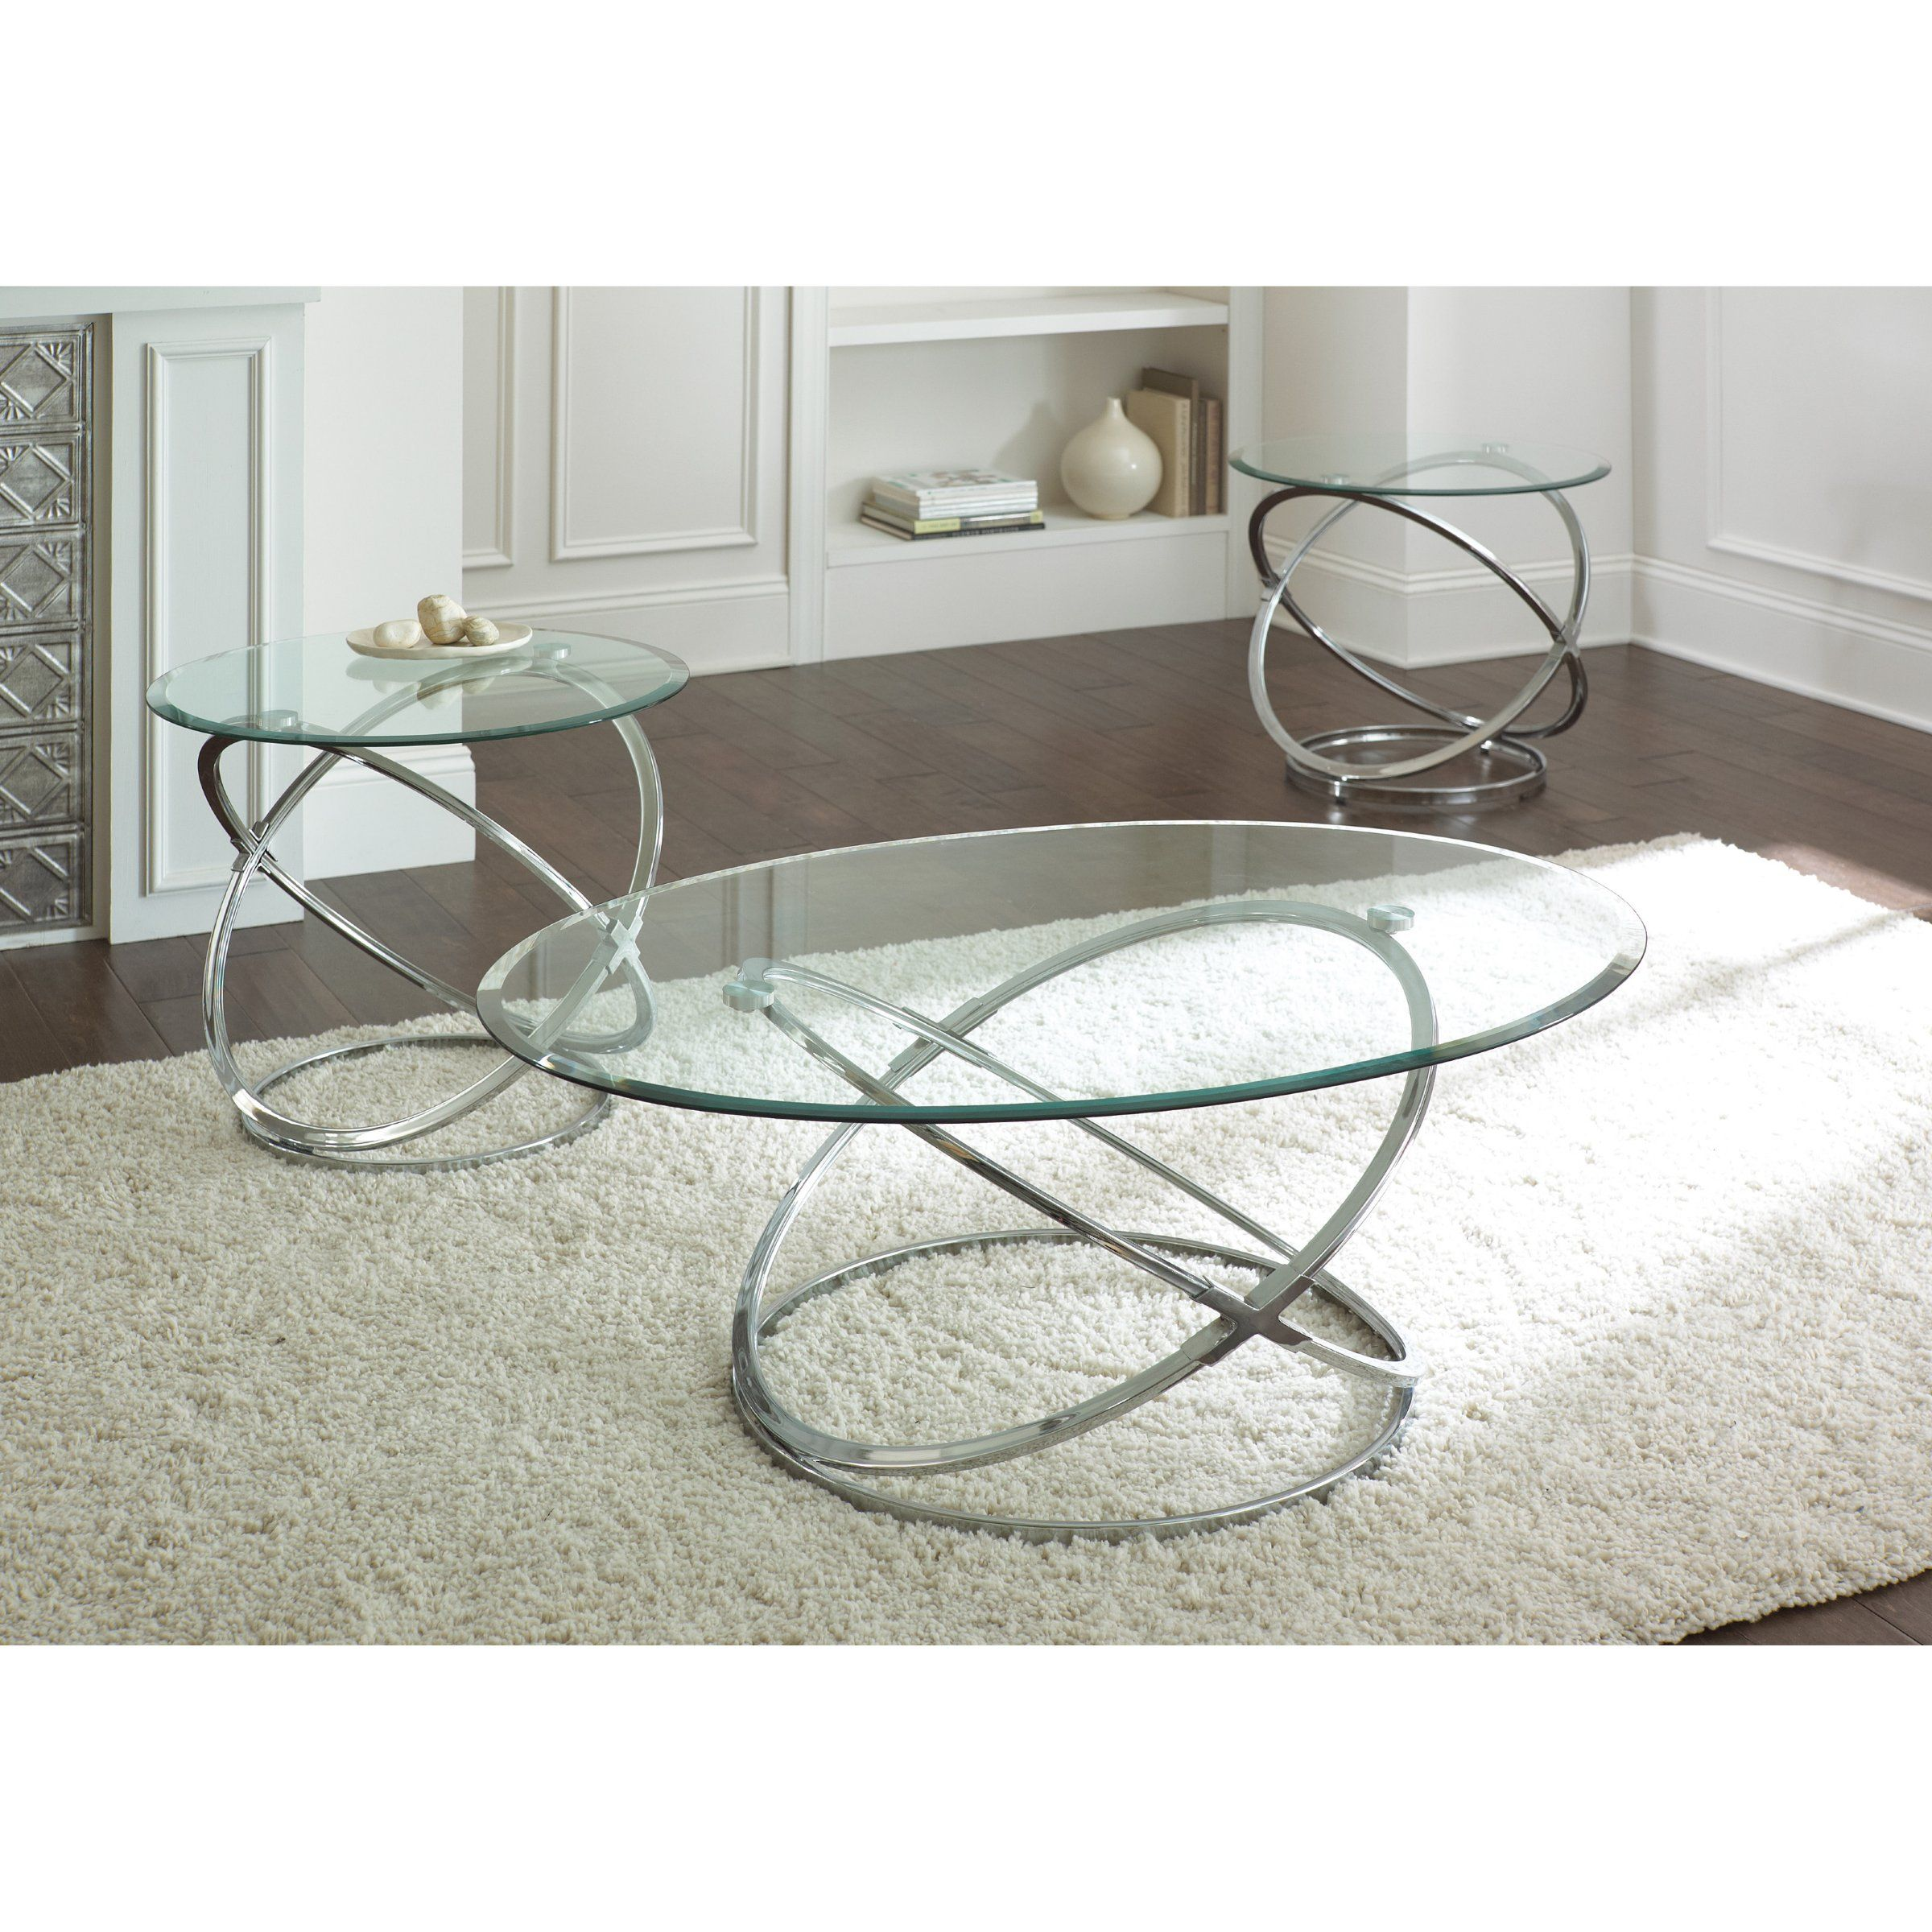 Steve Silver Orion Oval Chrome And Glass Coffee Table Set 3